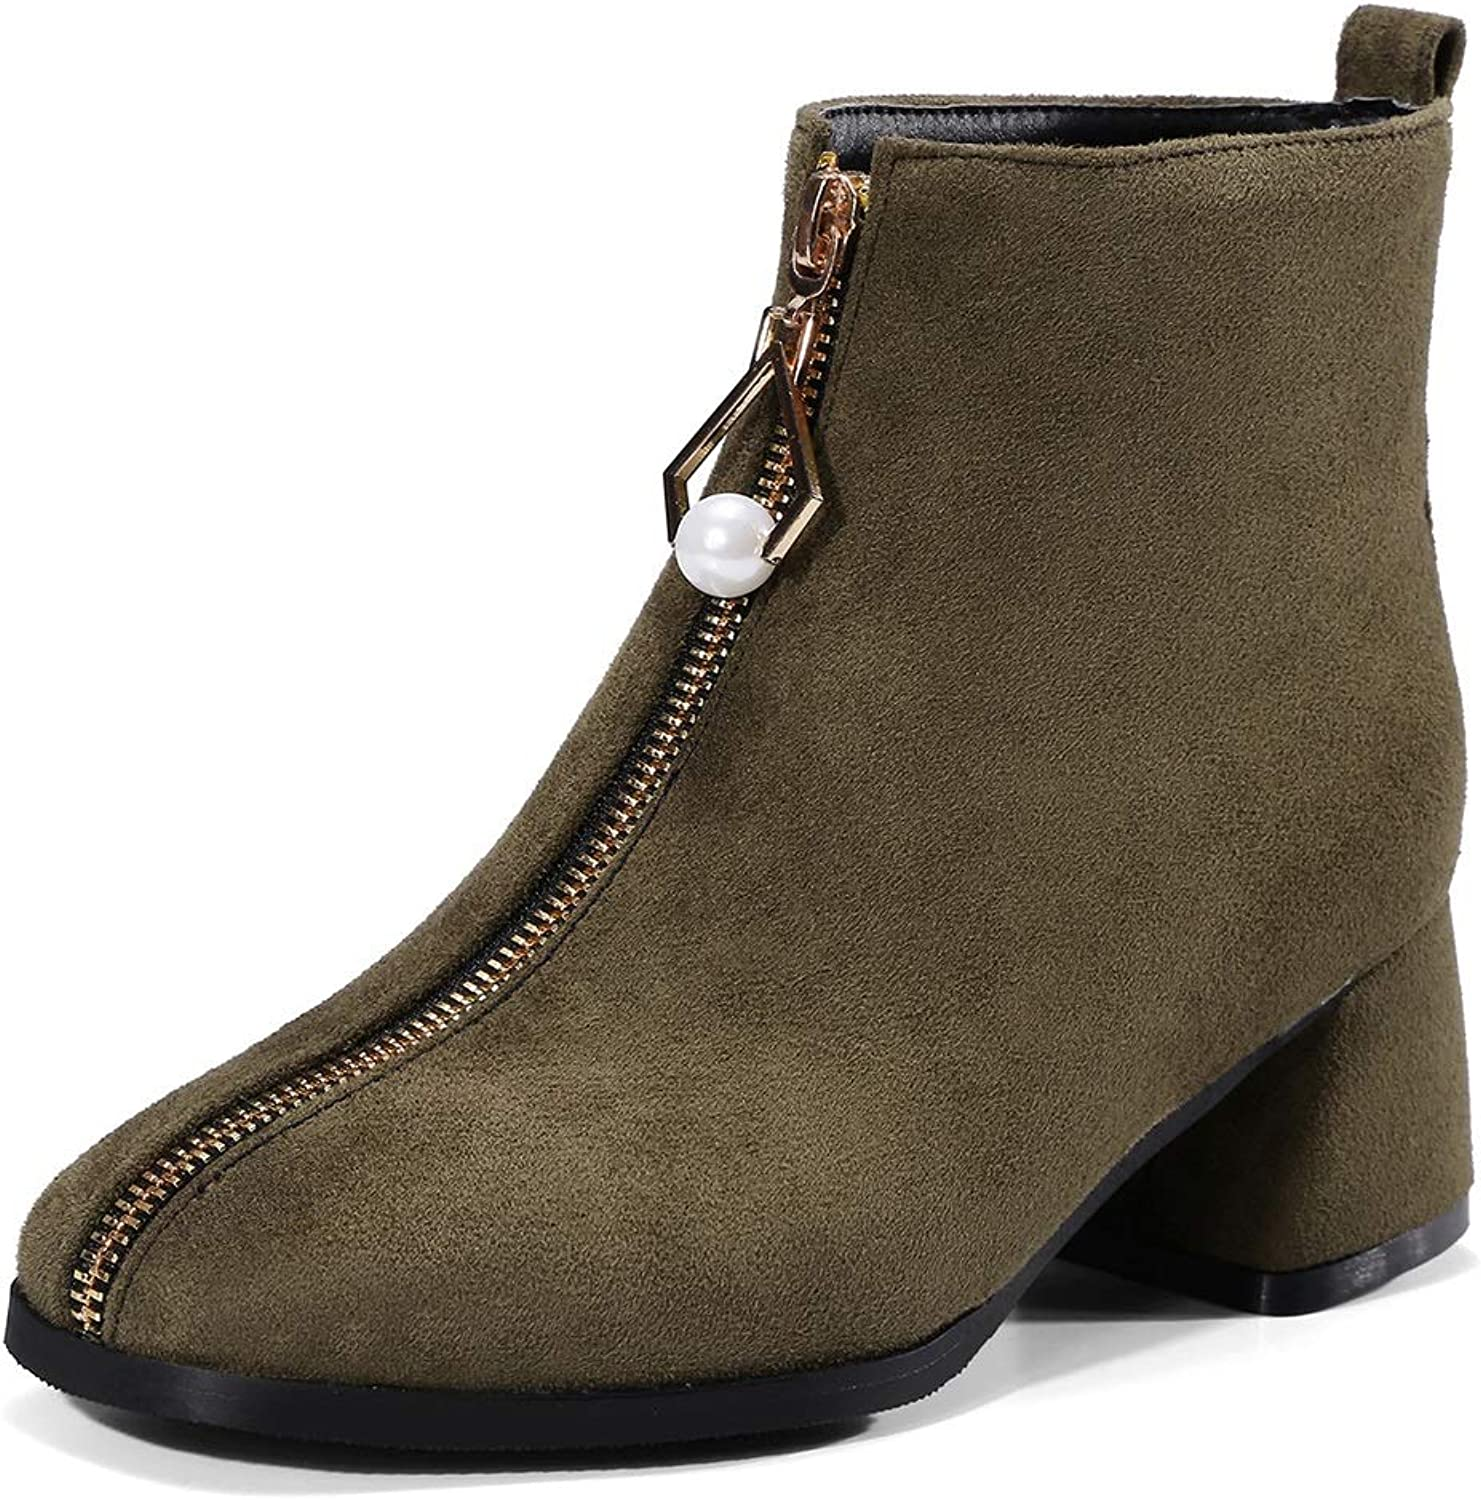 Ladies Booties, Fall Winter New Thick Heel Chelsea Boots Retro Temperament Zipper Women's Fashion Boots Green Black Khaki (color   C, Size   41)